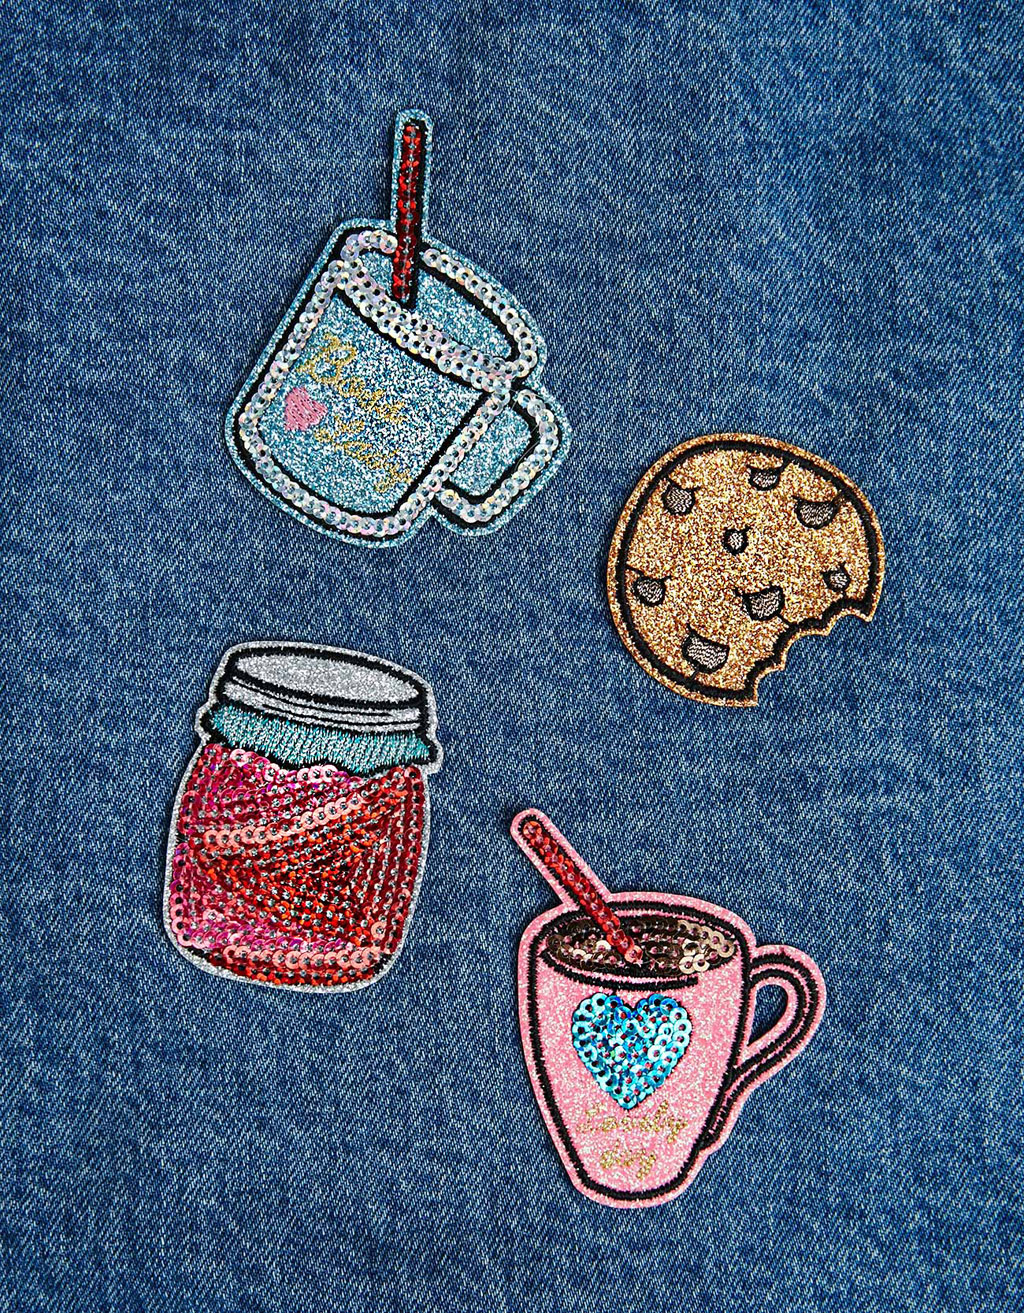 Set of 4 cookie patches